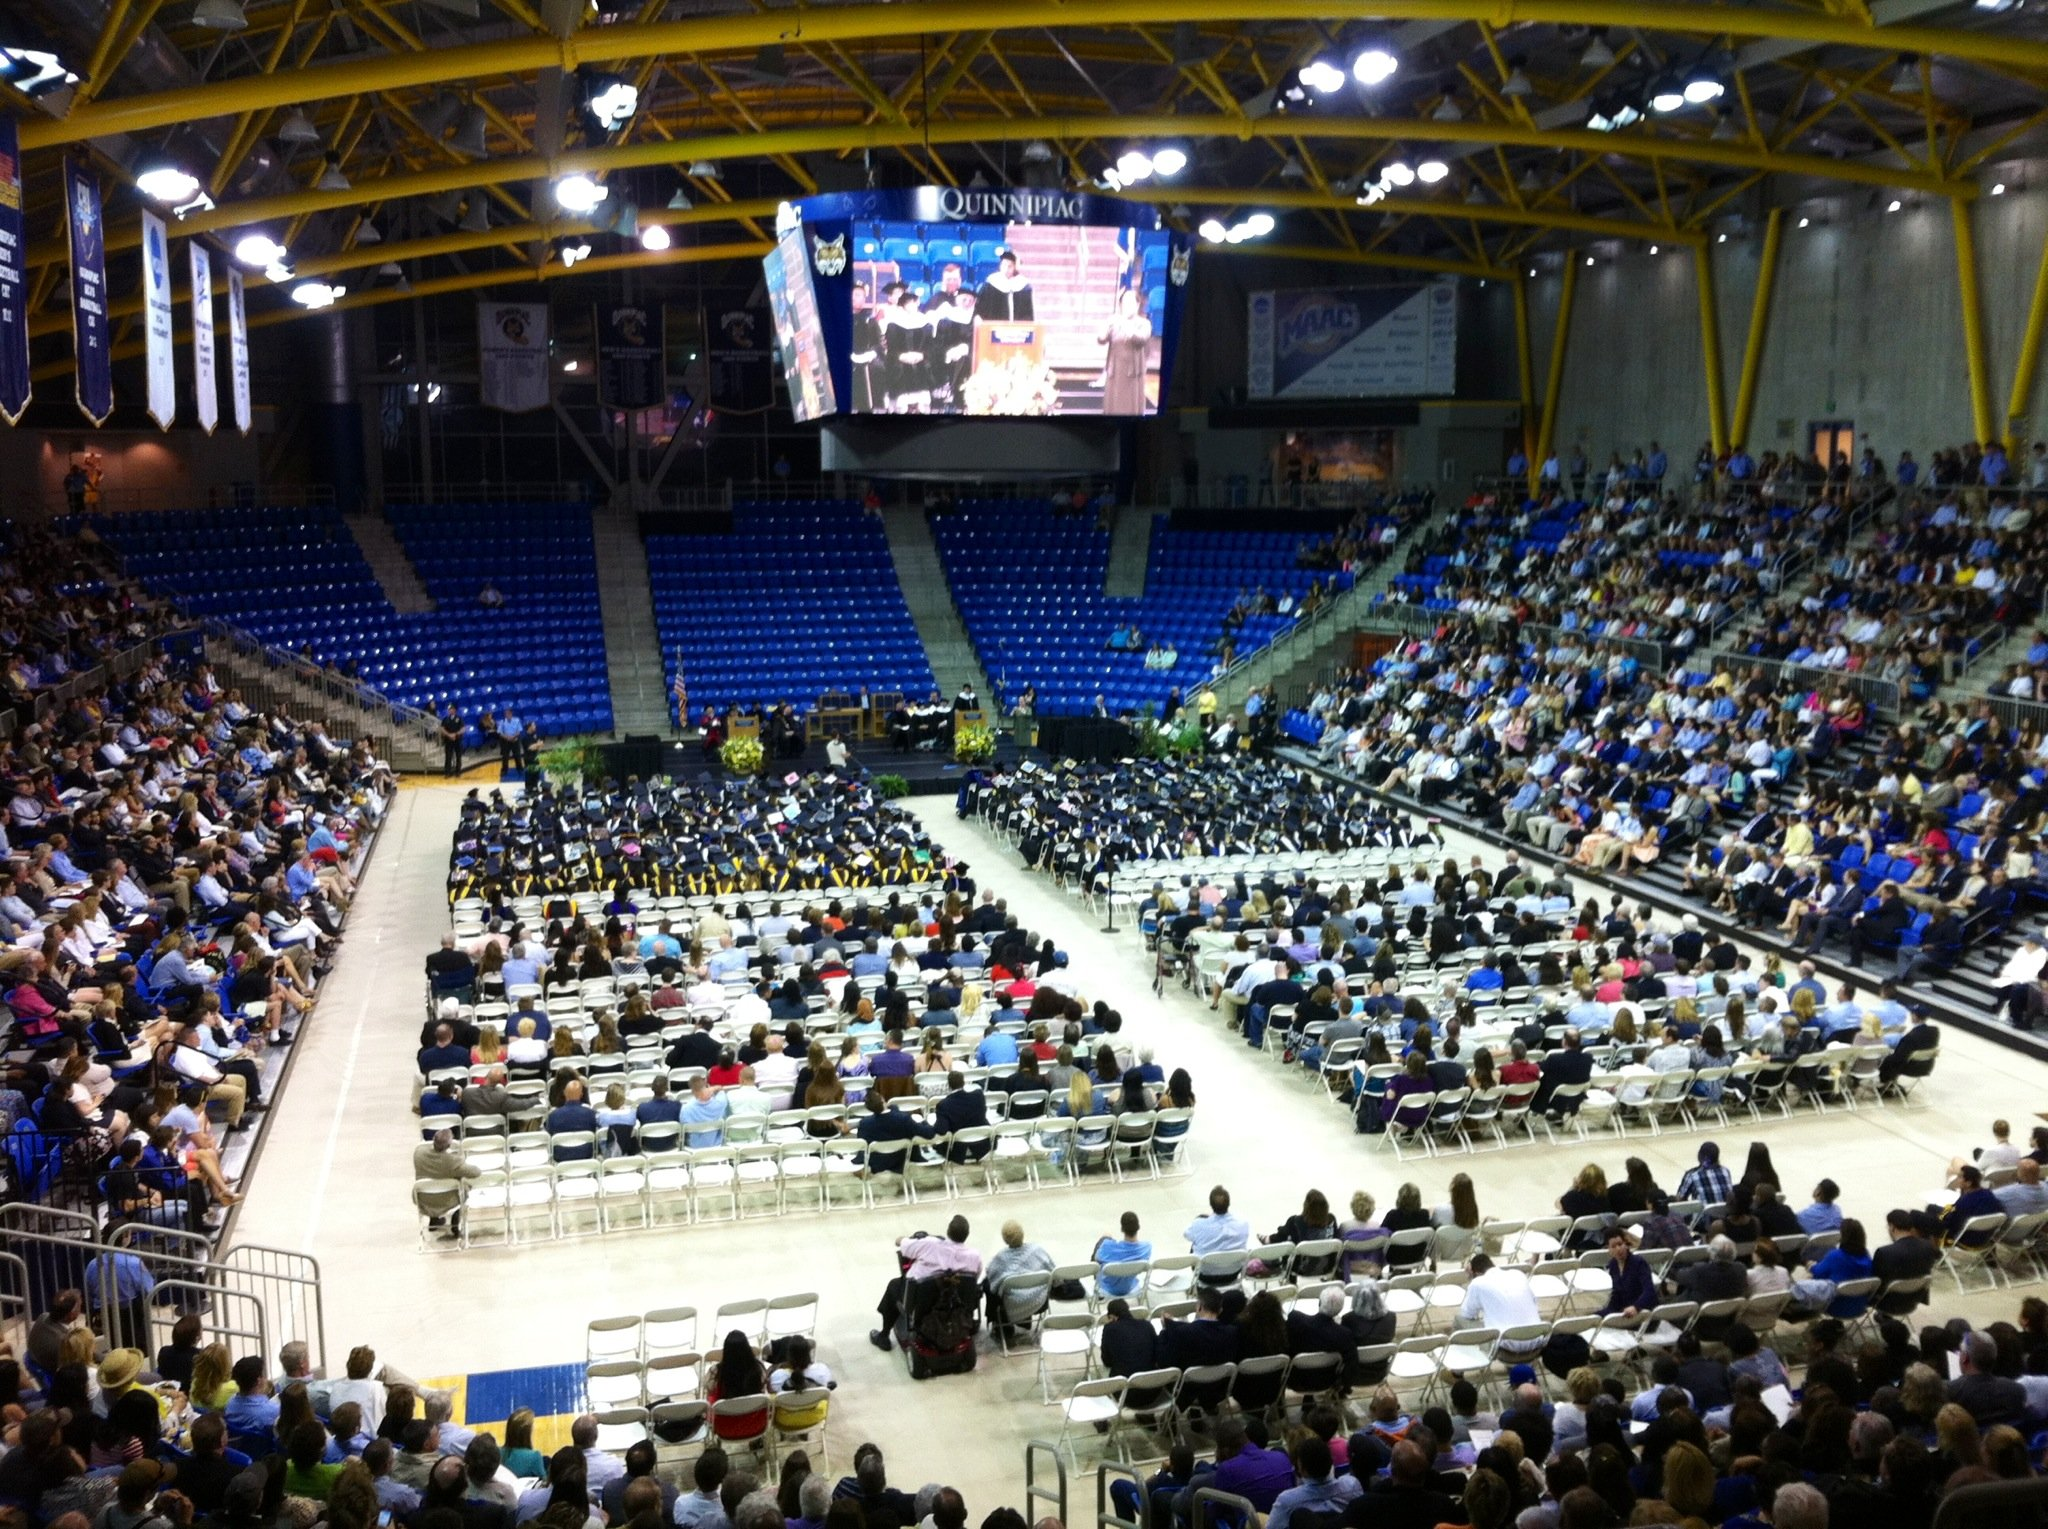 Quinnipiac University Arts and Sciences graduation was delayed because of bomb threats that were called in on Sunday afternoon.